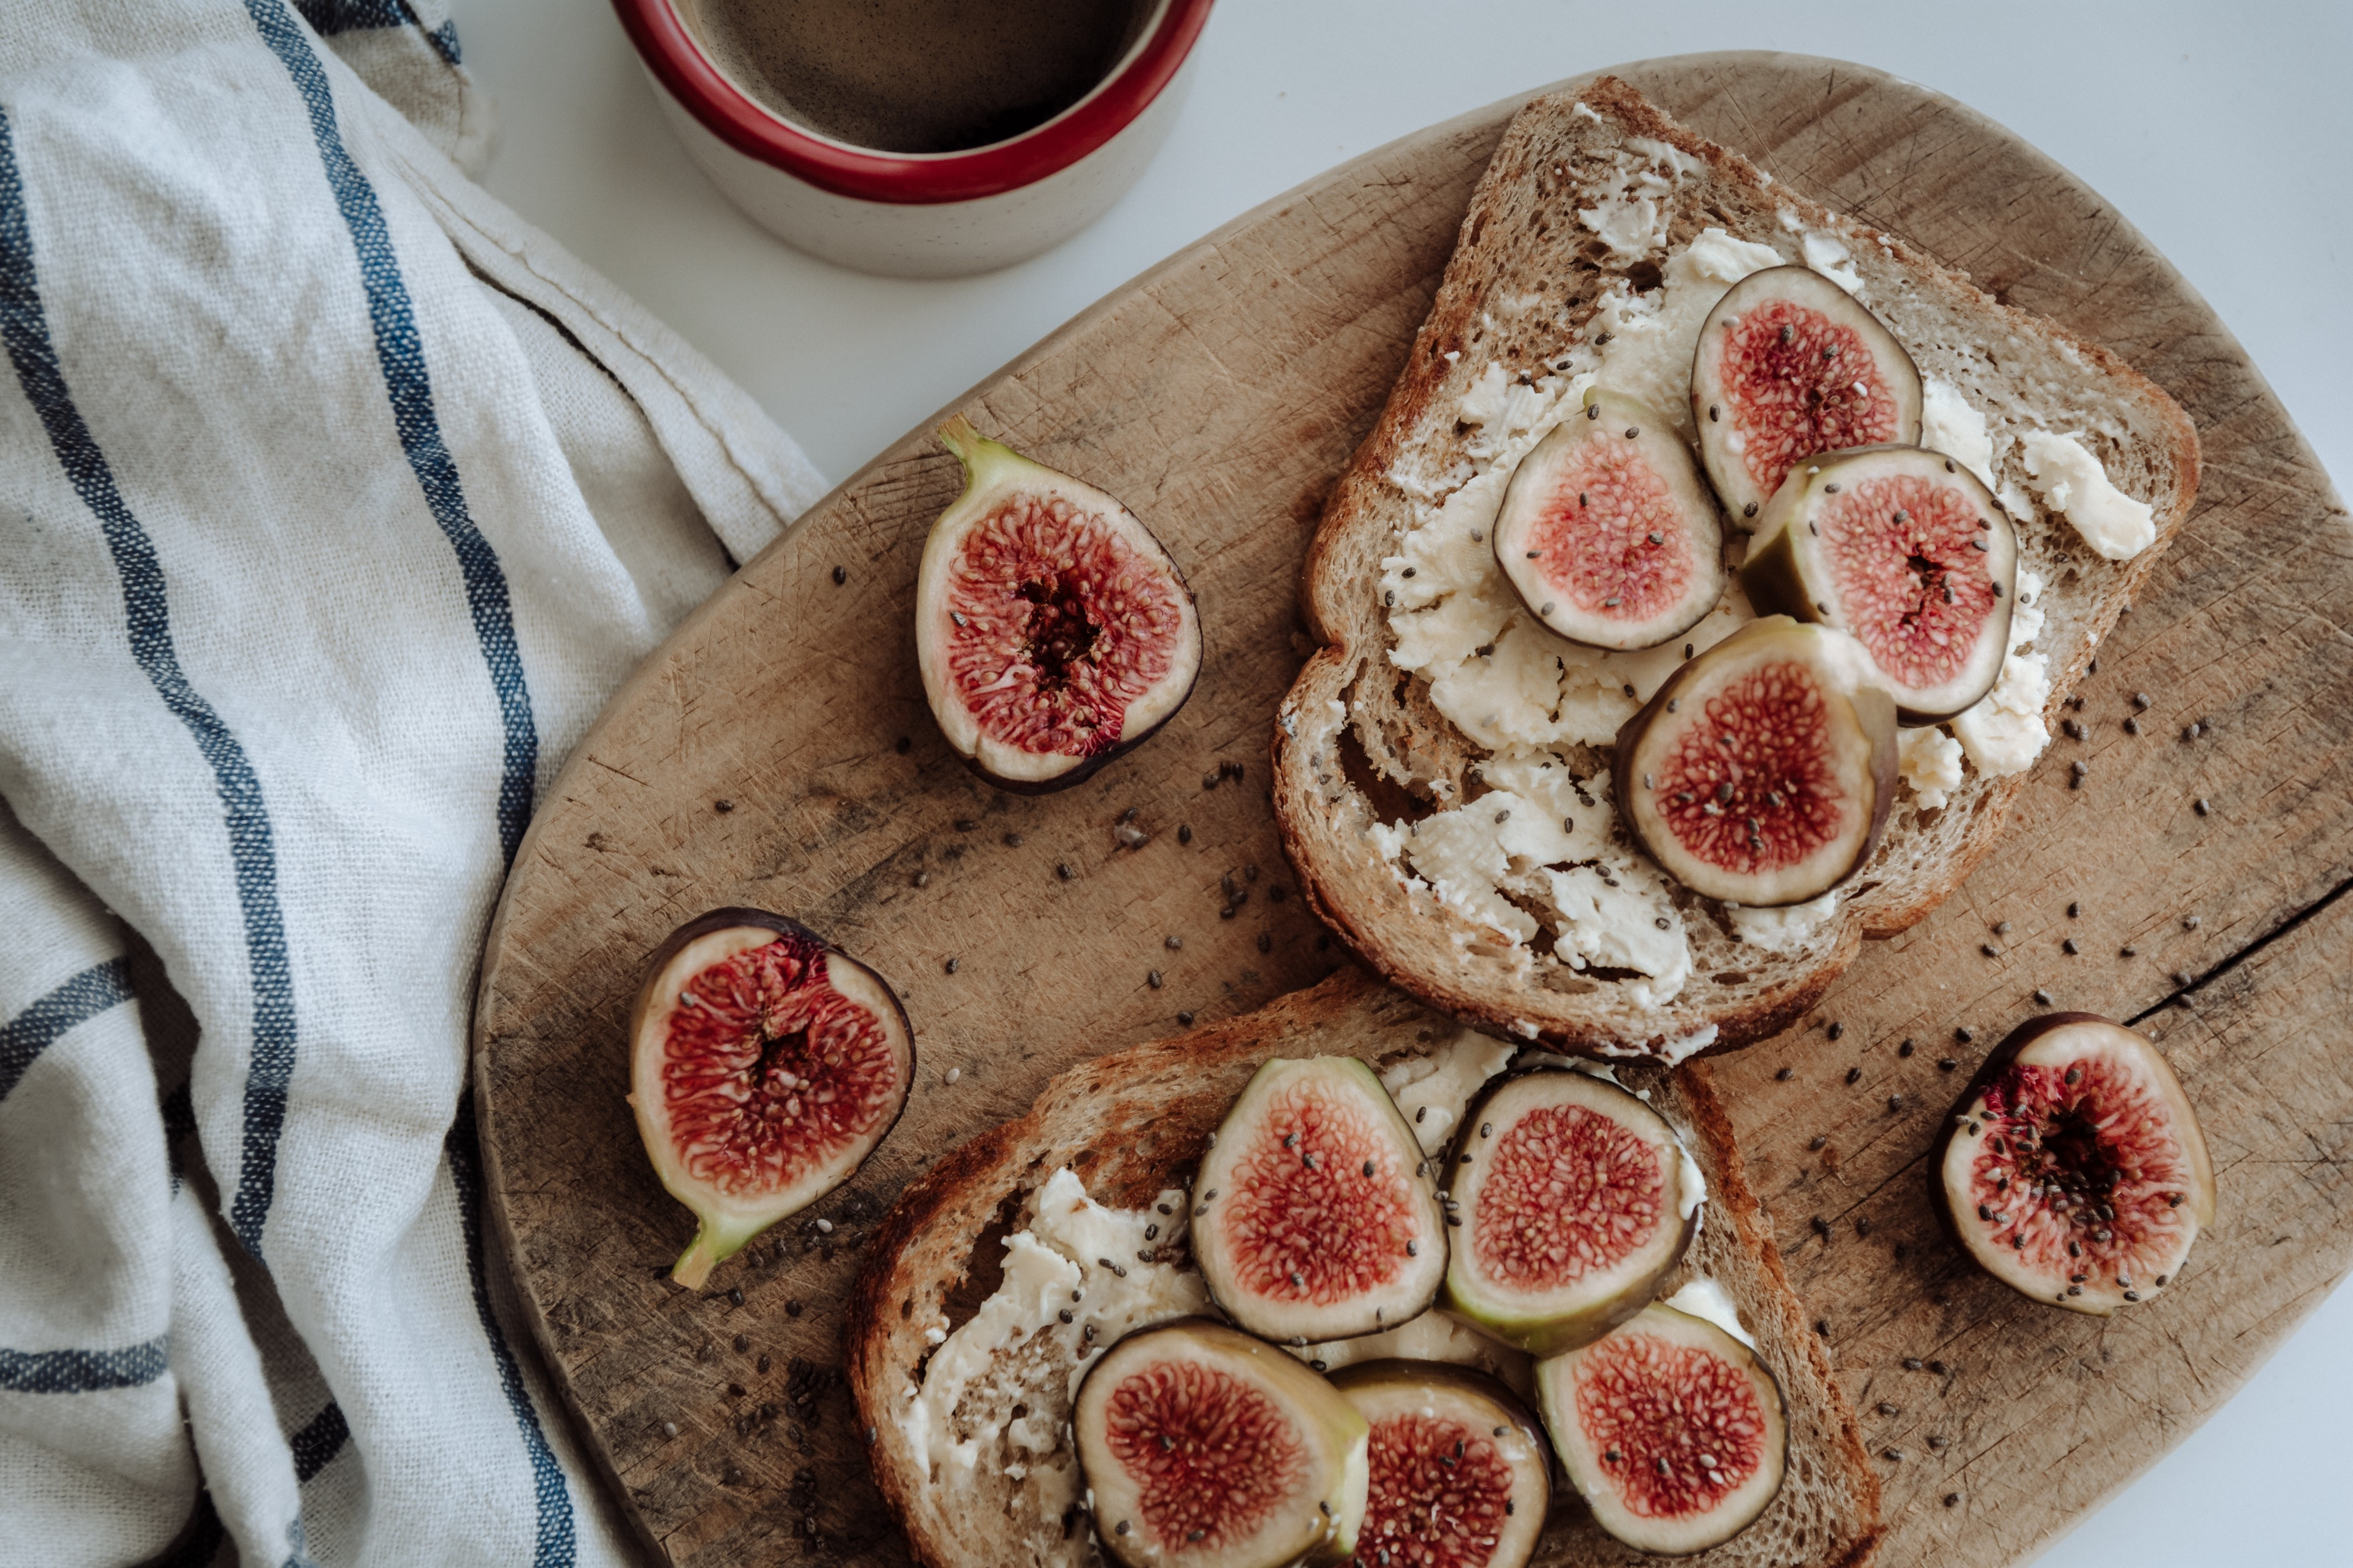 A bright scene of halved figs on thick-cut bread atop a wooden serving board, coffee cup and linen towel casually placed along side.